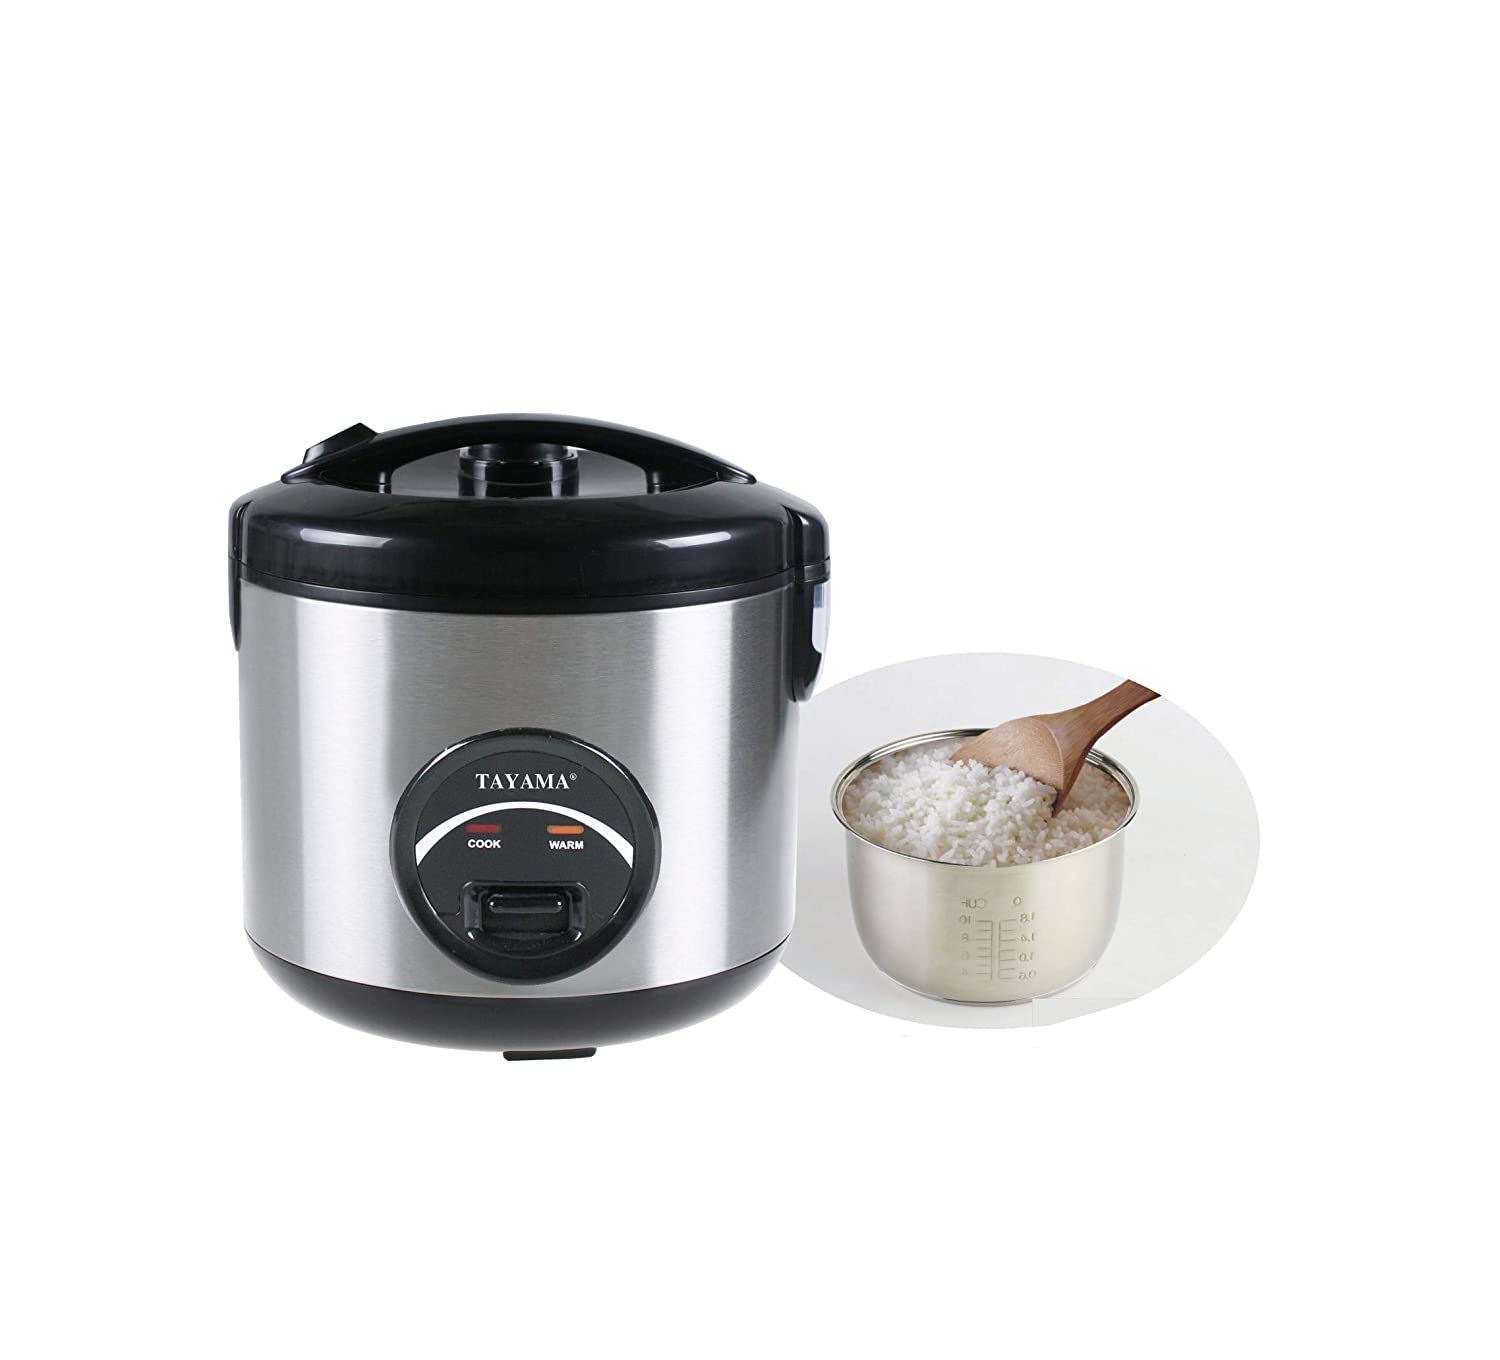 Tayama 10 Cup Stainless Steel Rice Cooker by TAYAMA   B000LEDVE2